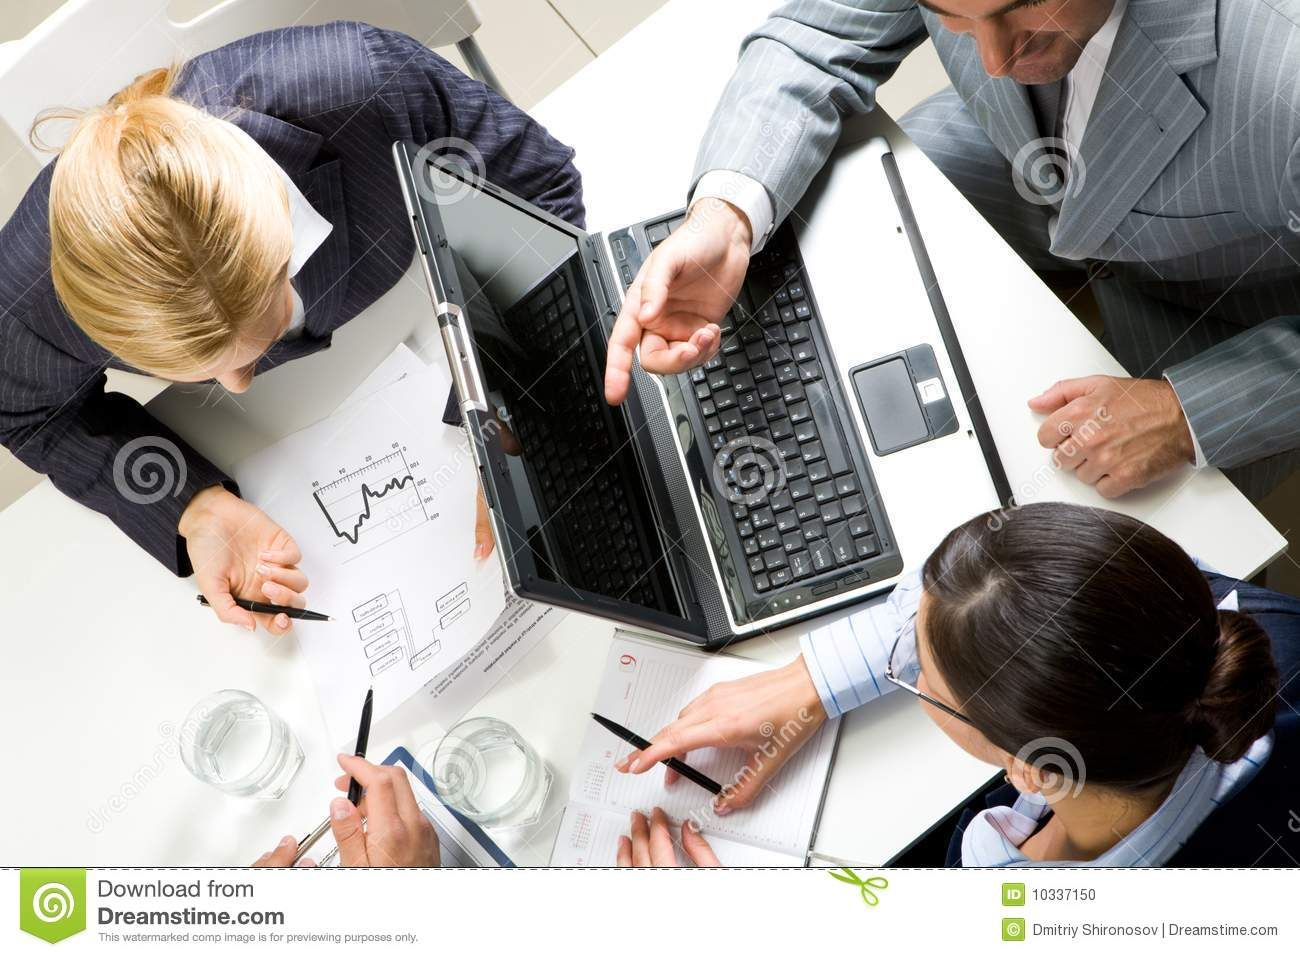 At Meeting Above View Of Business People Working With Documents At Meeting Sponsored Ad Advertisement View Documents Work Stock Photos Photo Image At meeting or in meeting